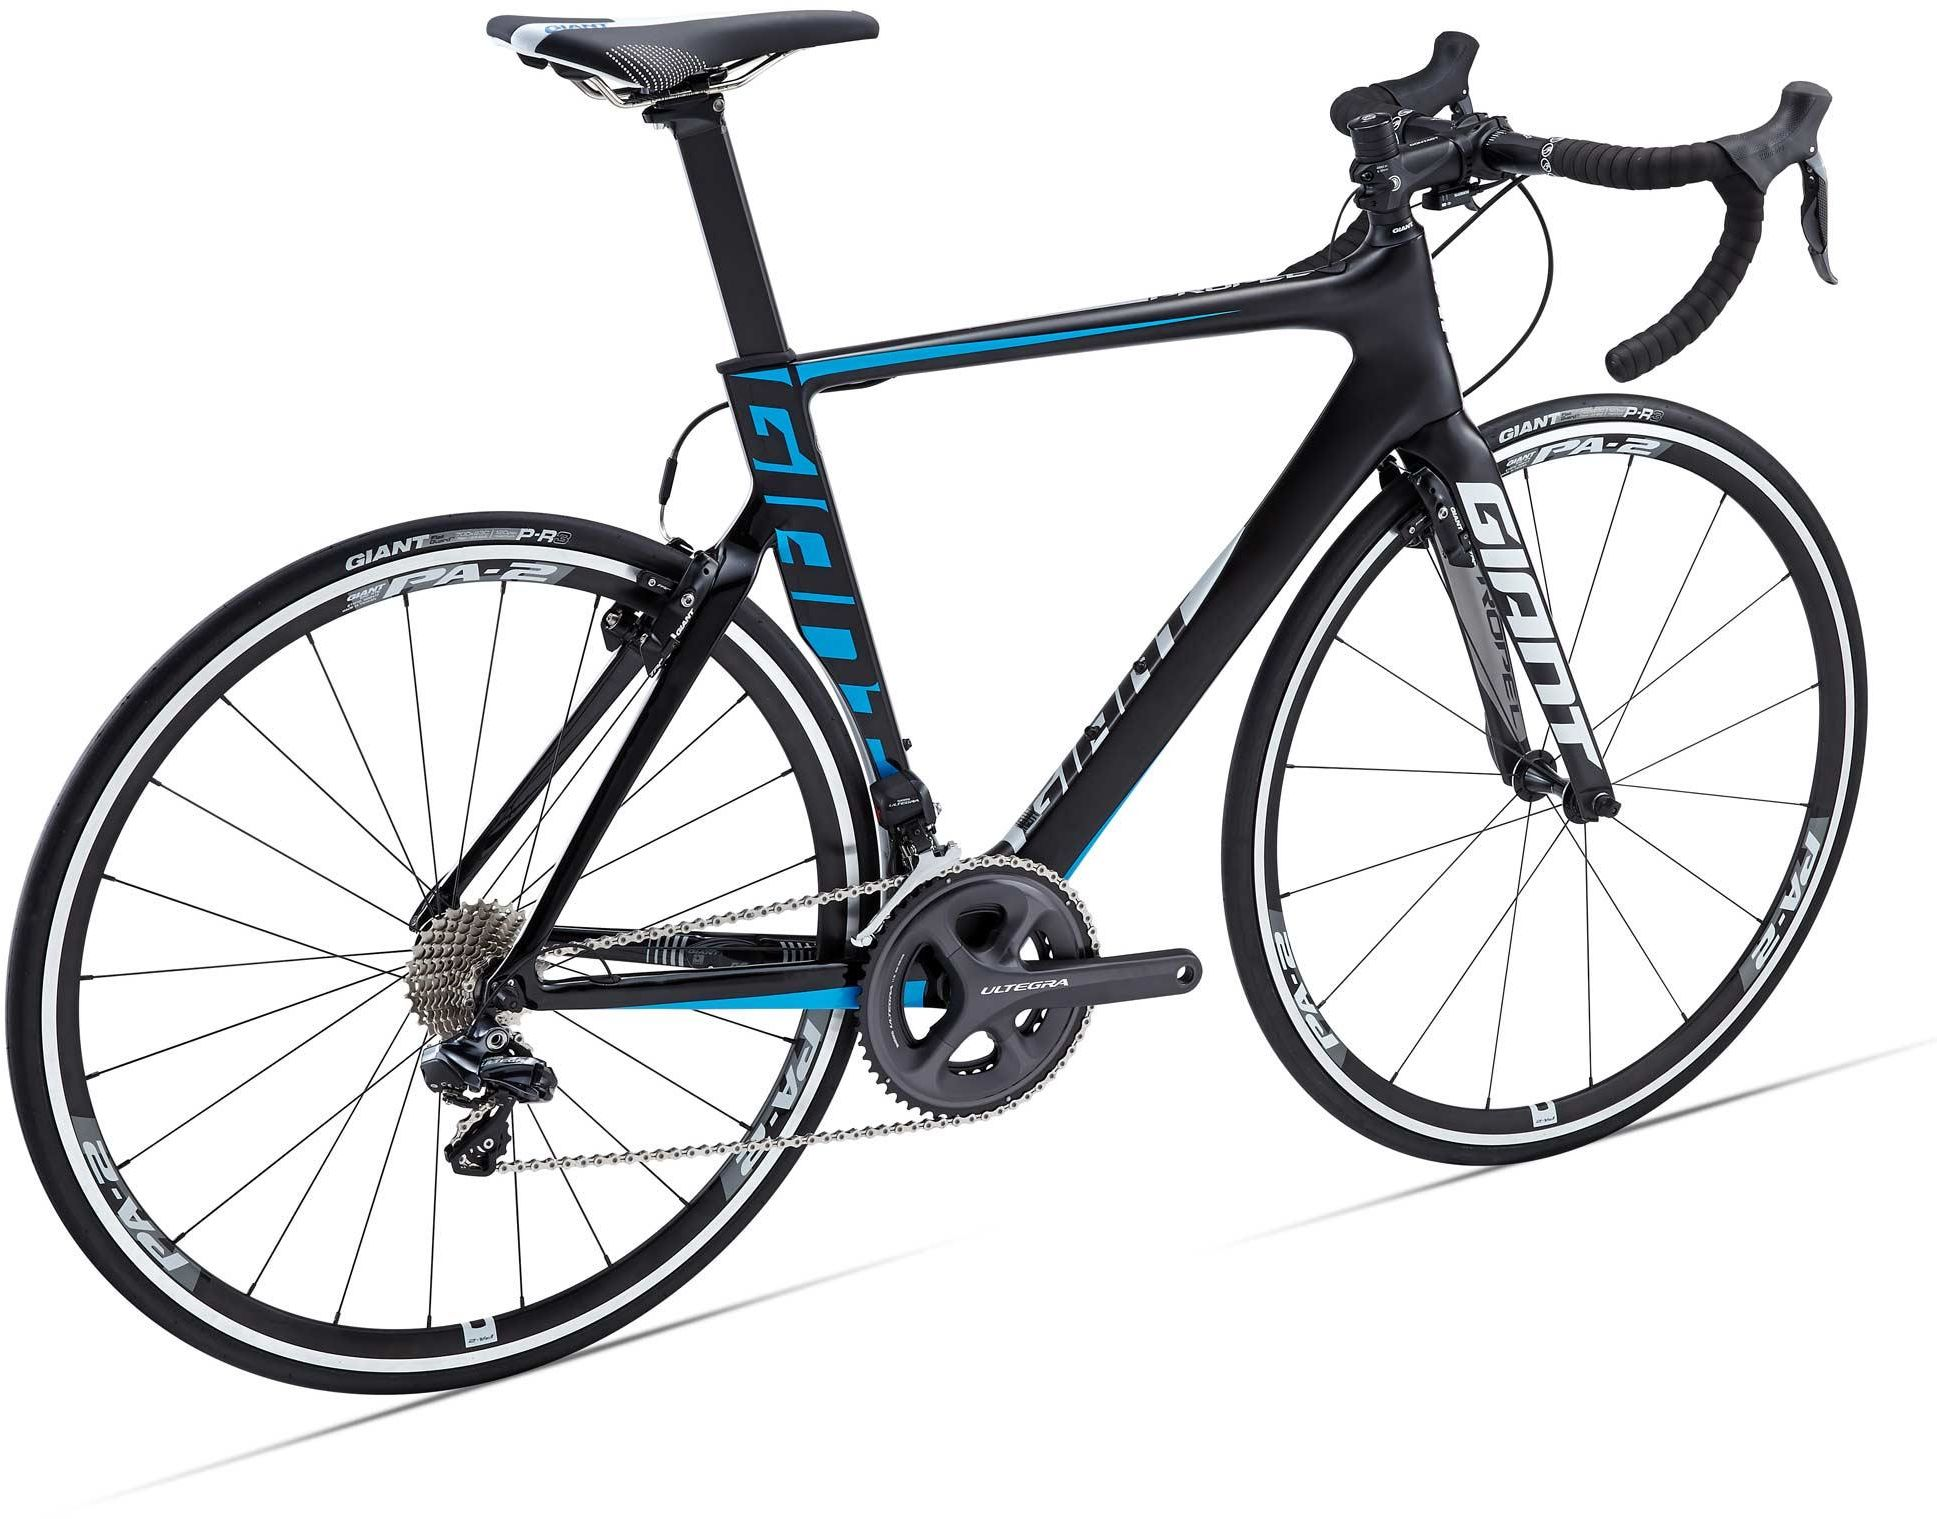 Giant Propel Advanced 0 2015 review - The Bike List